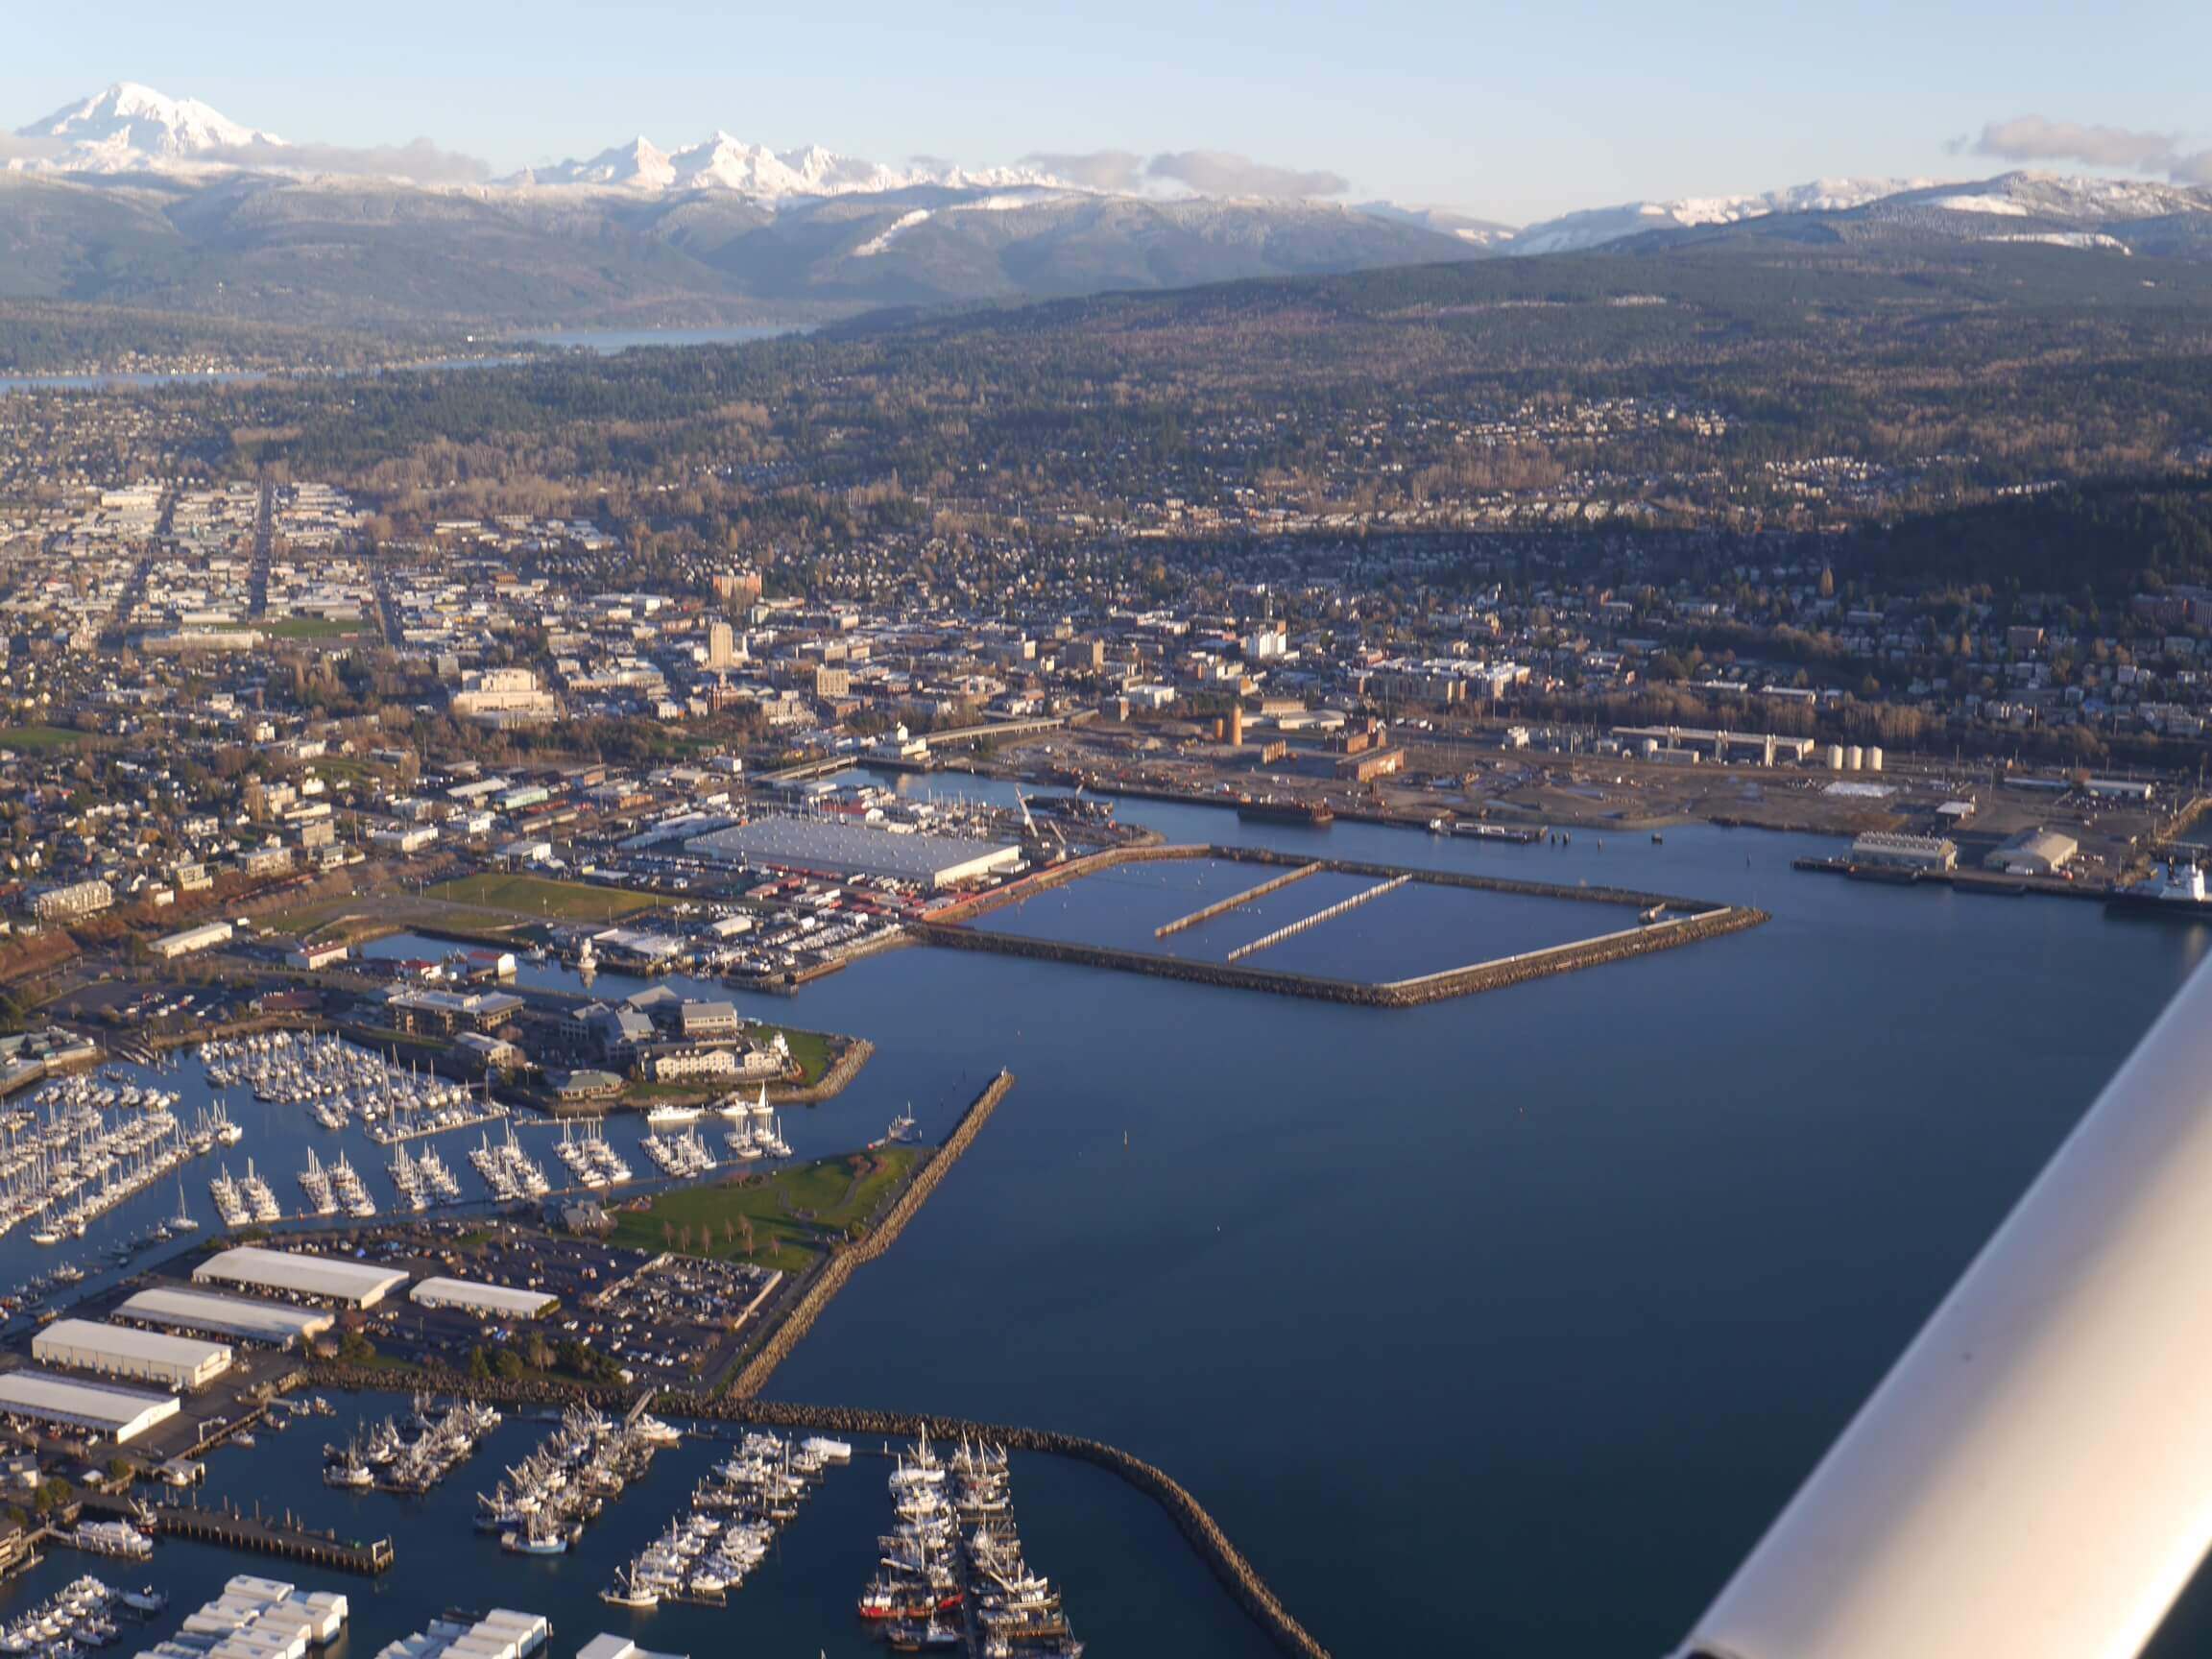 Aerial view of Bellingham Bay. Mount Baker sits in the background.